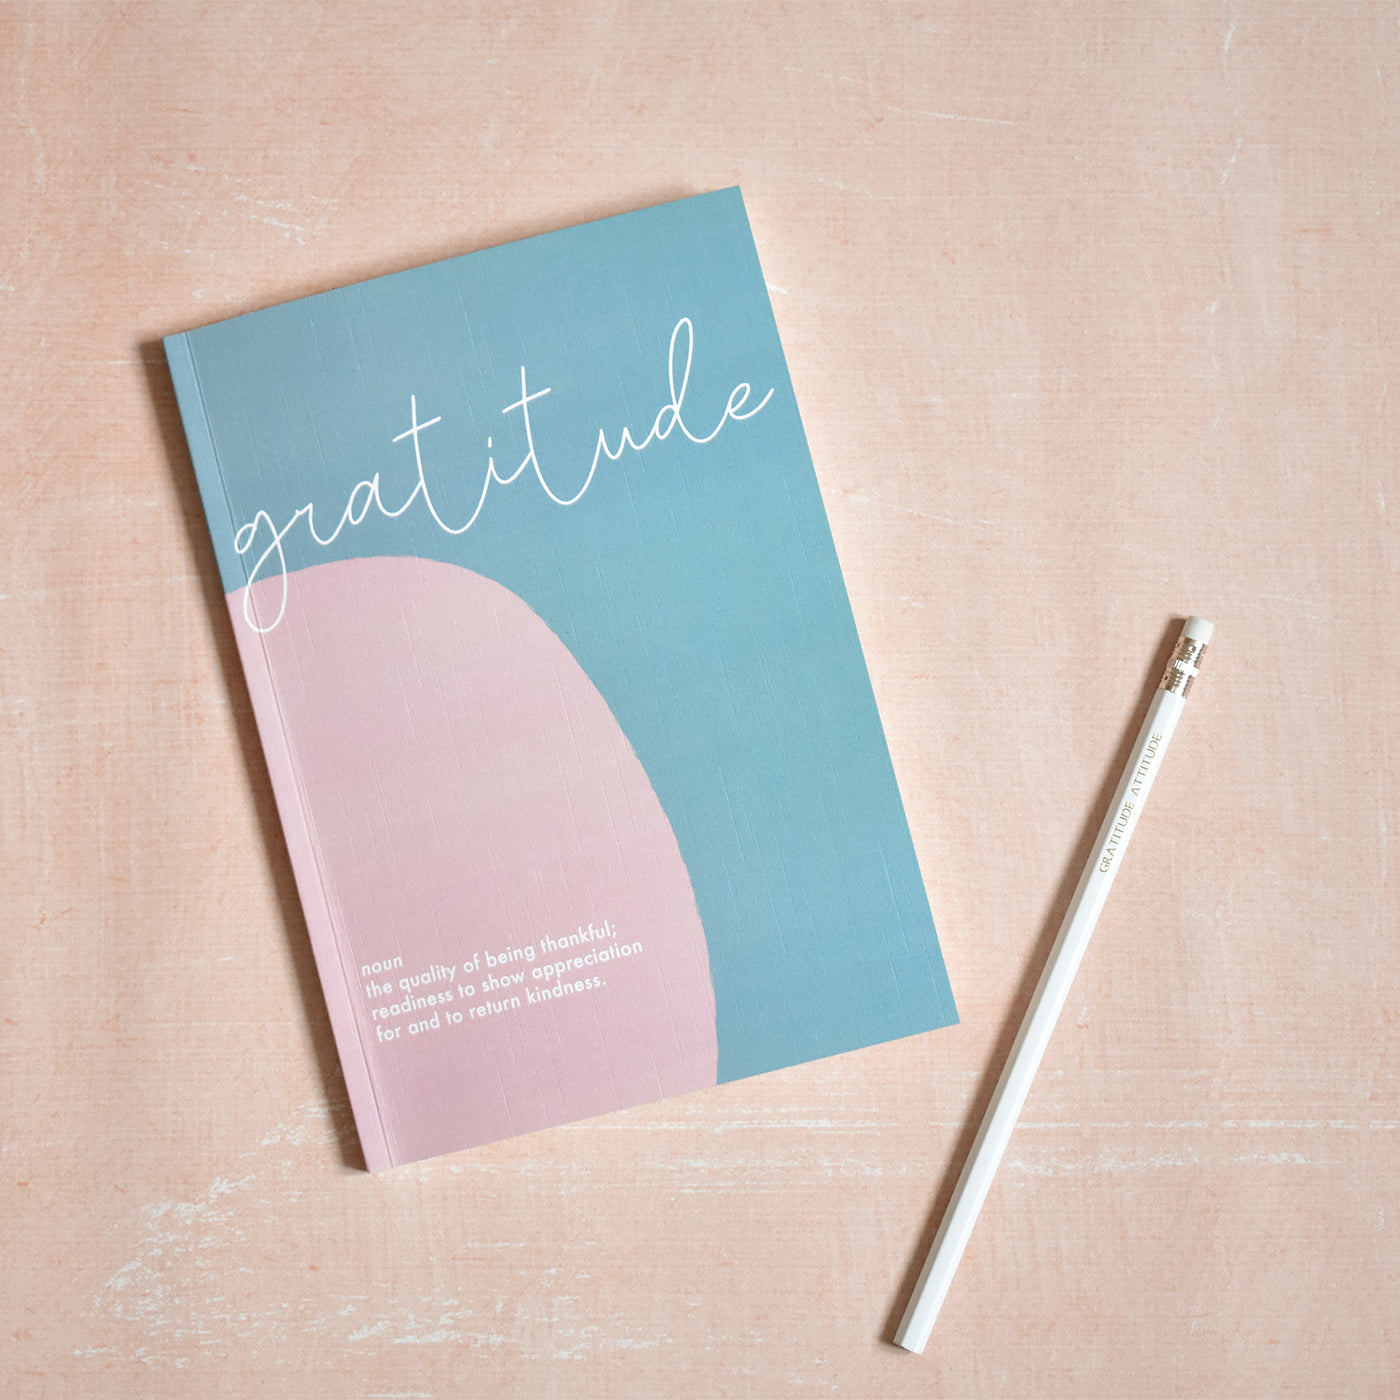 Gratitude Journal with guided pages